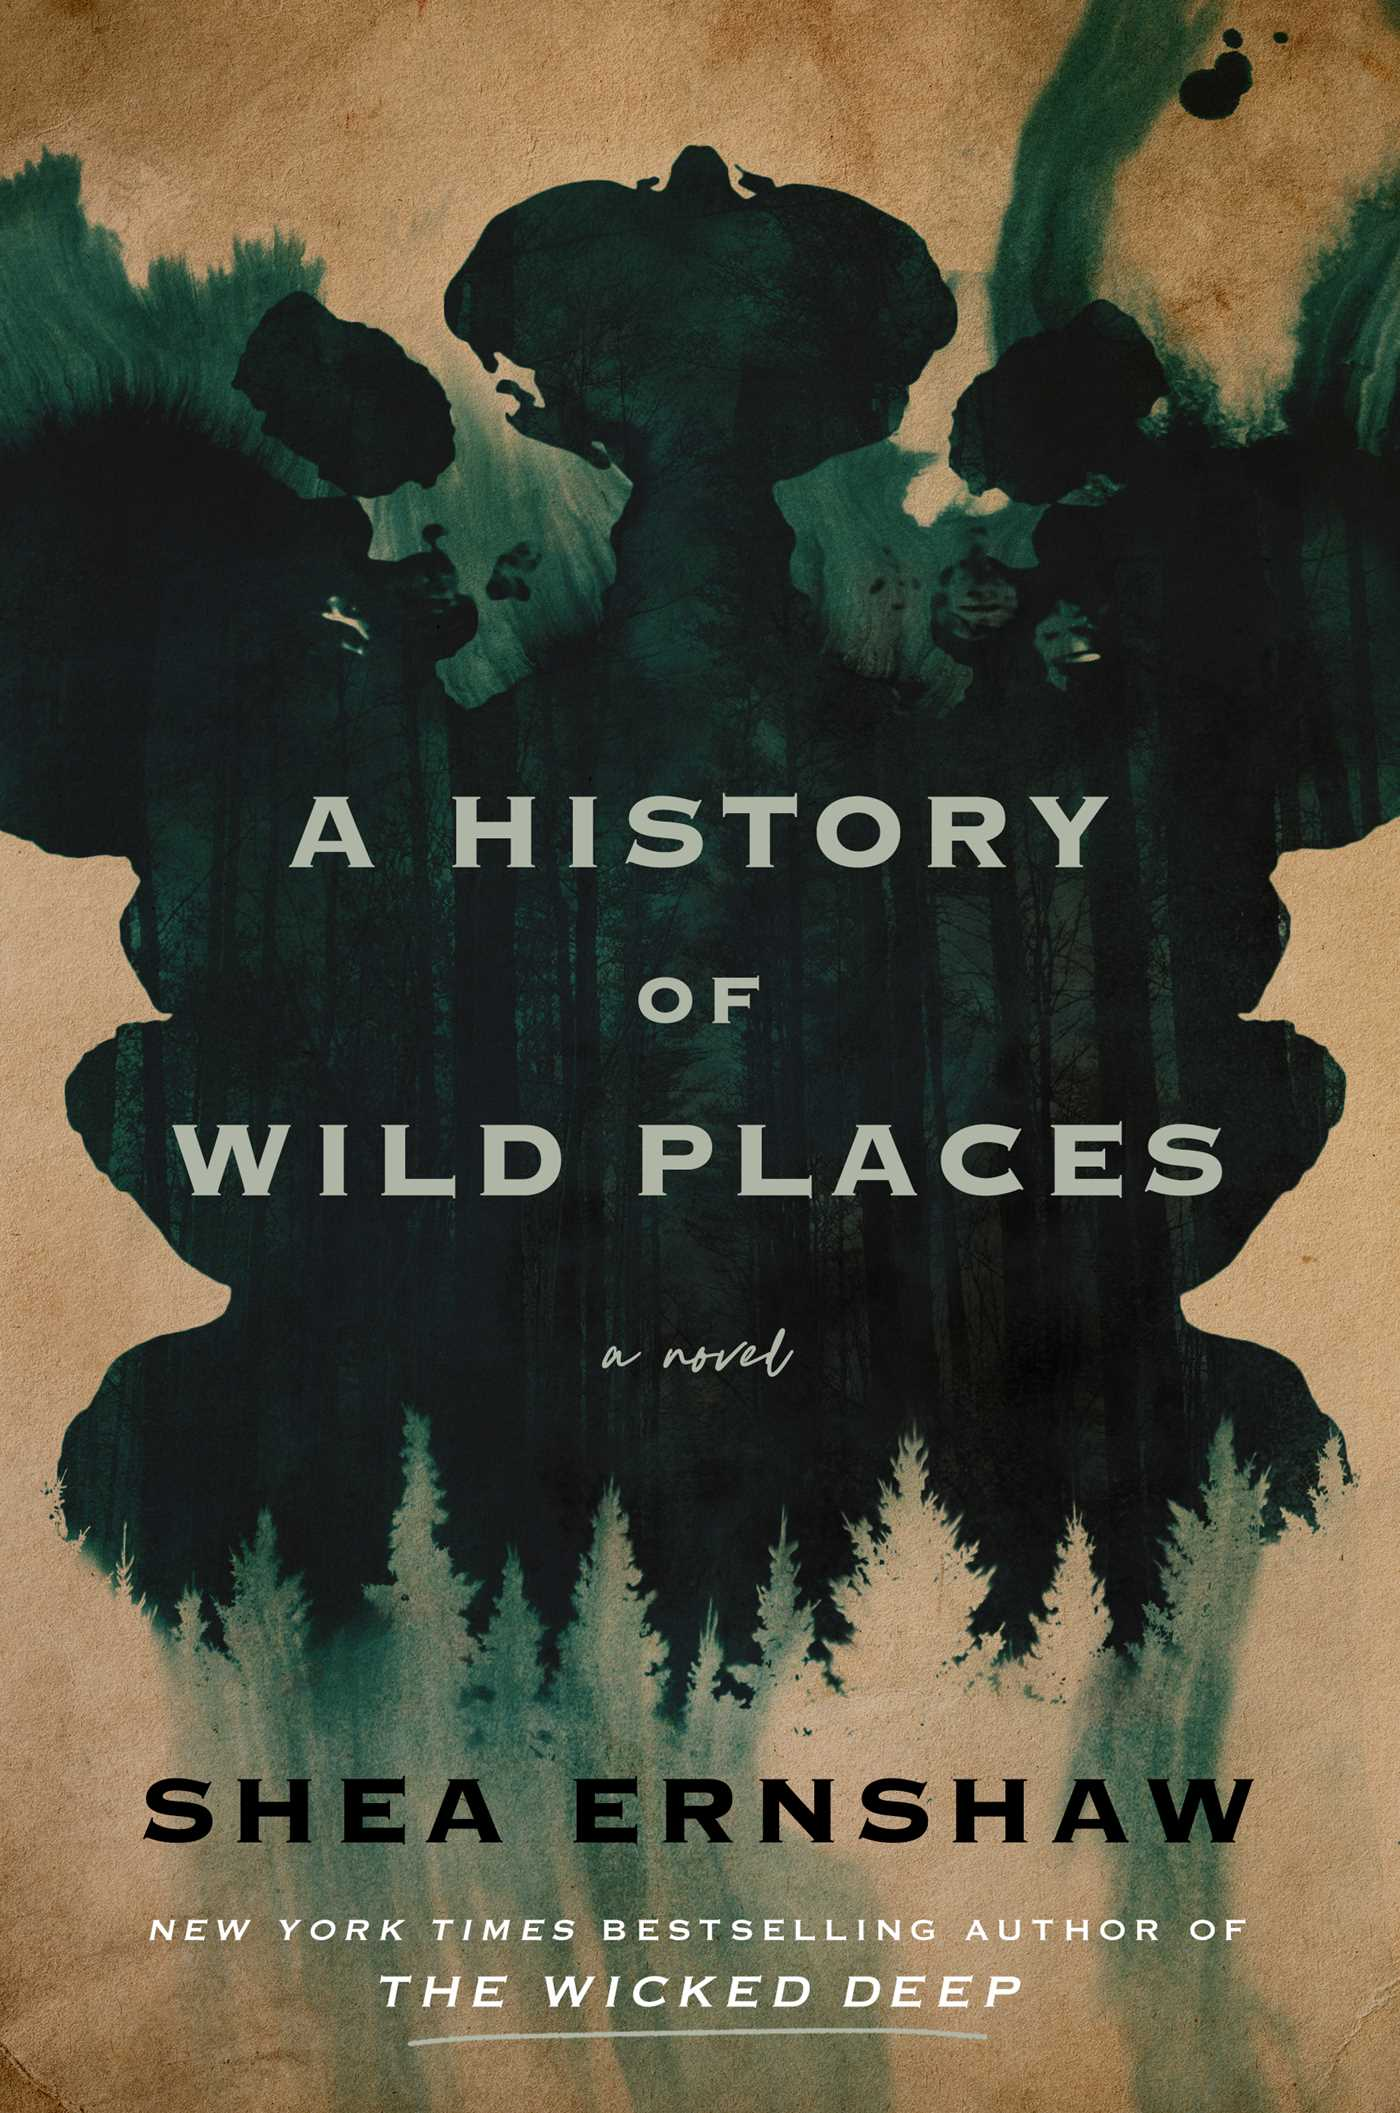 A History Of Wild Places Release Date? Shea Ernshaw 2021 New Releases